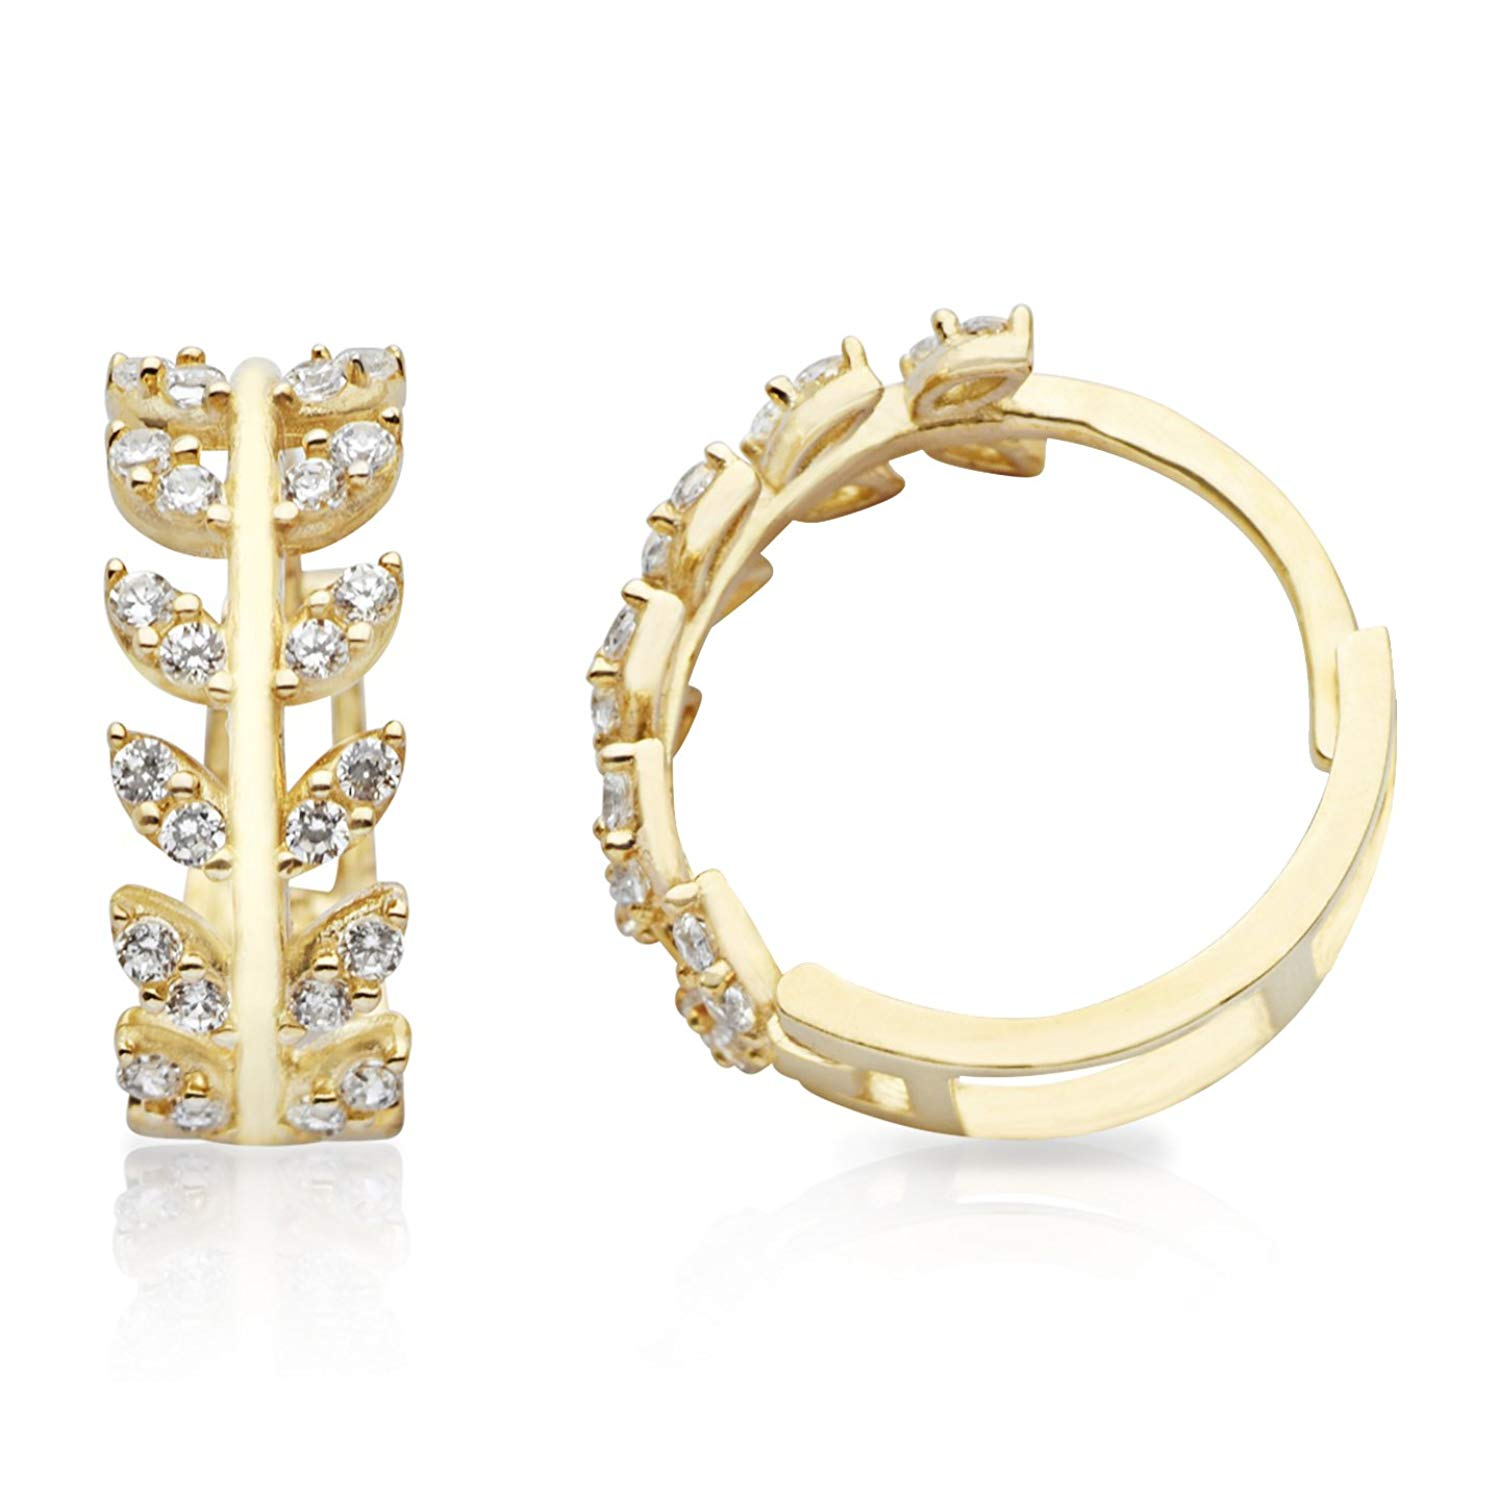 Get Quotations New 14k Yellow Gold Huggie Hoop Earrings With Branch And Leaves Design For Women S